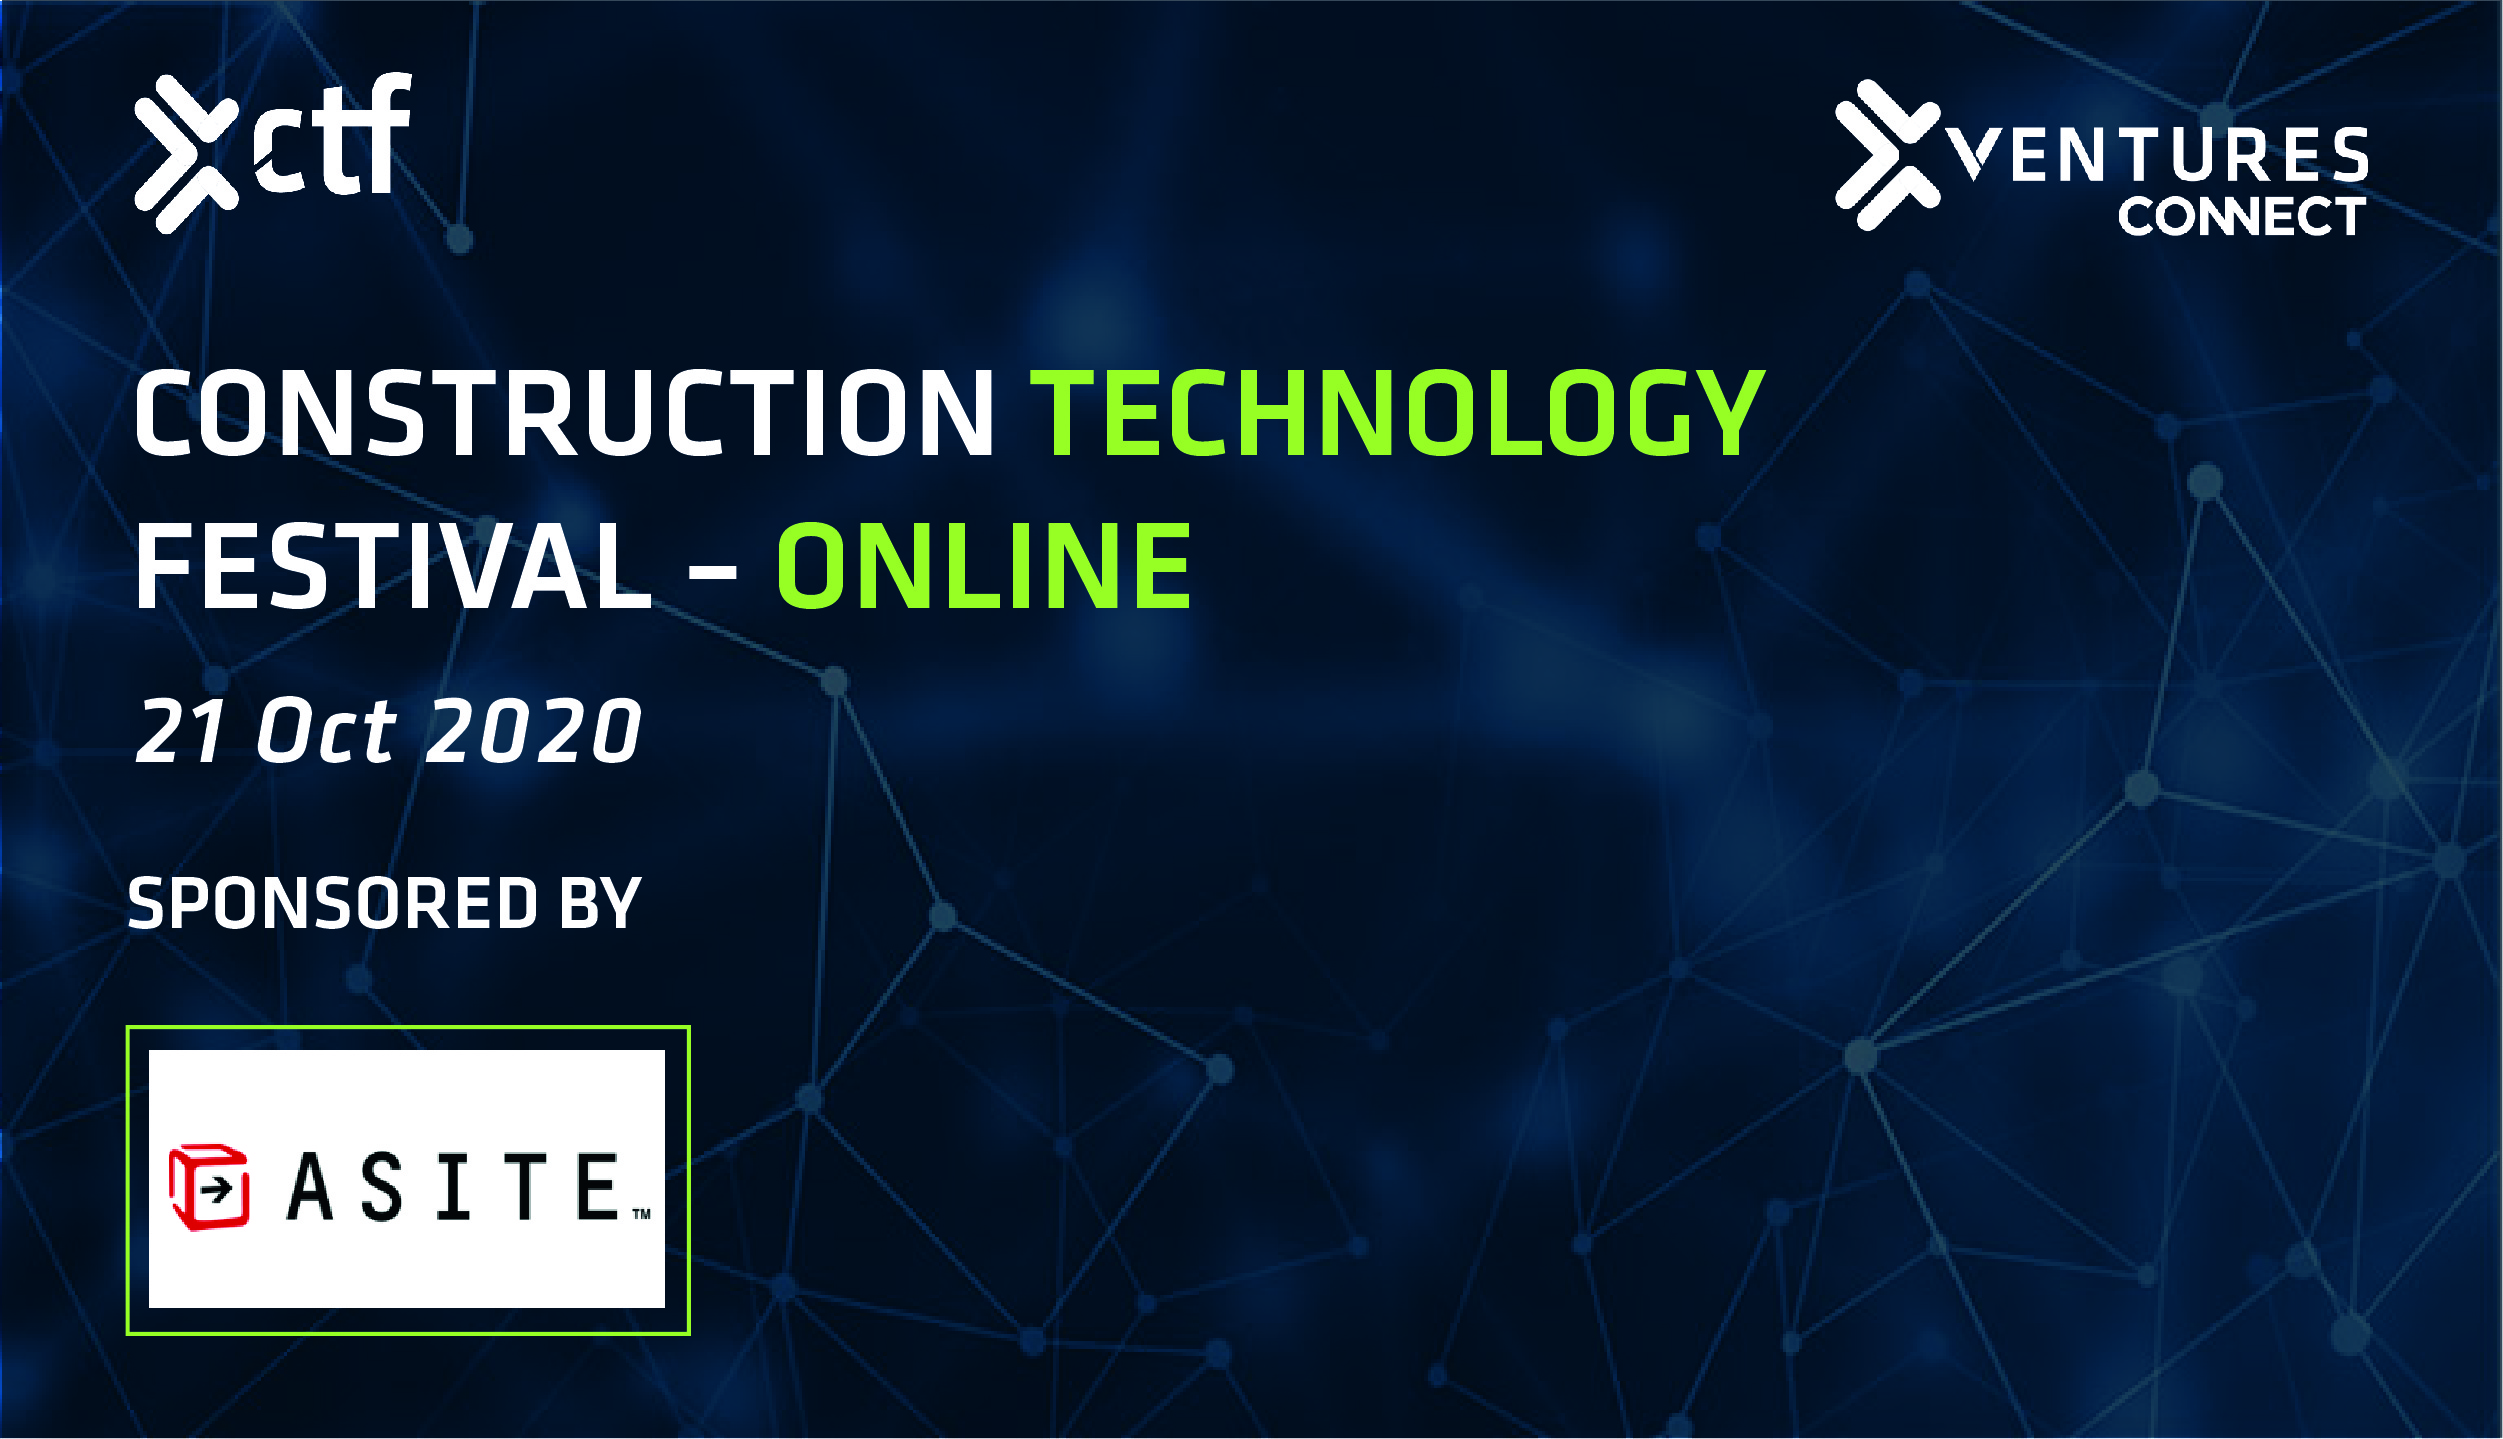 Construction Technology Festival Online 2020